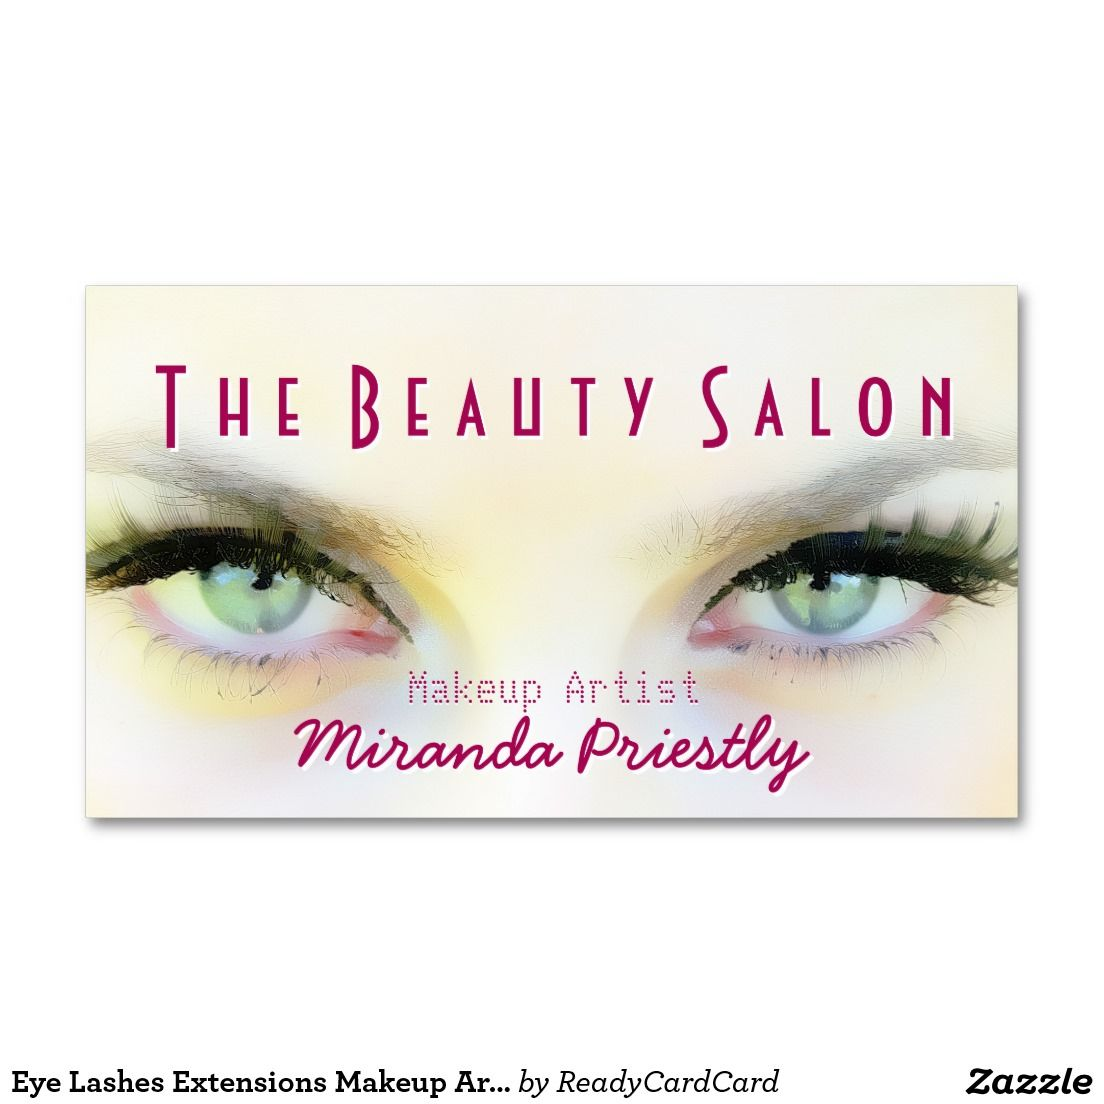 Eye Lashes Extensions Makeup Artist Cosmetologist Business Card ...